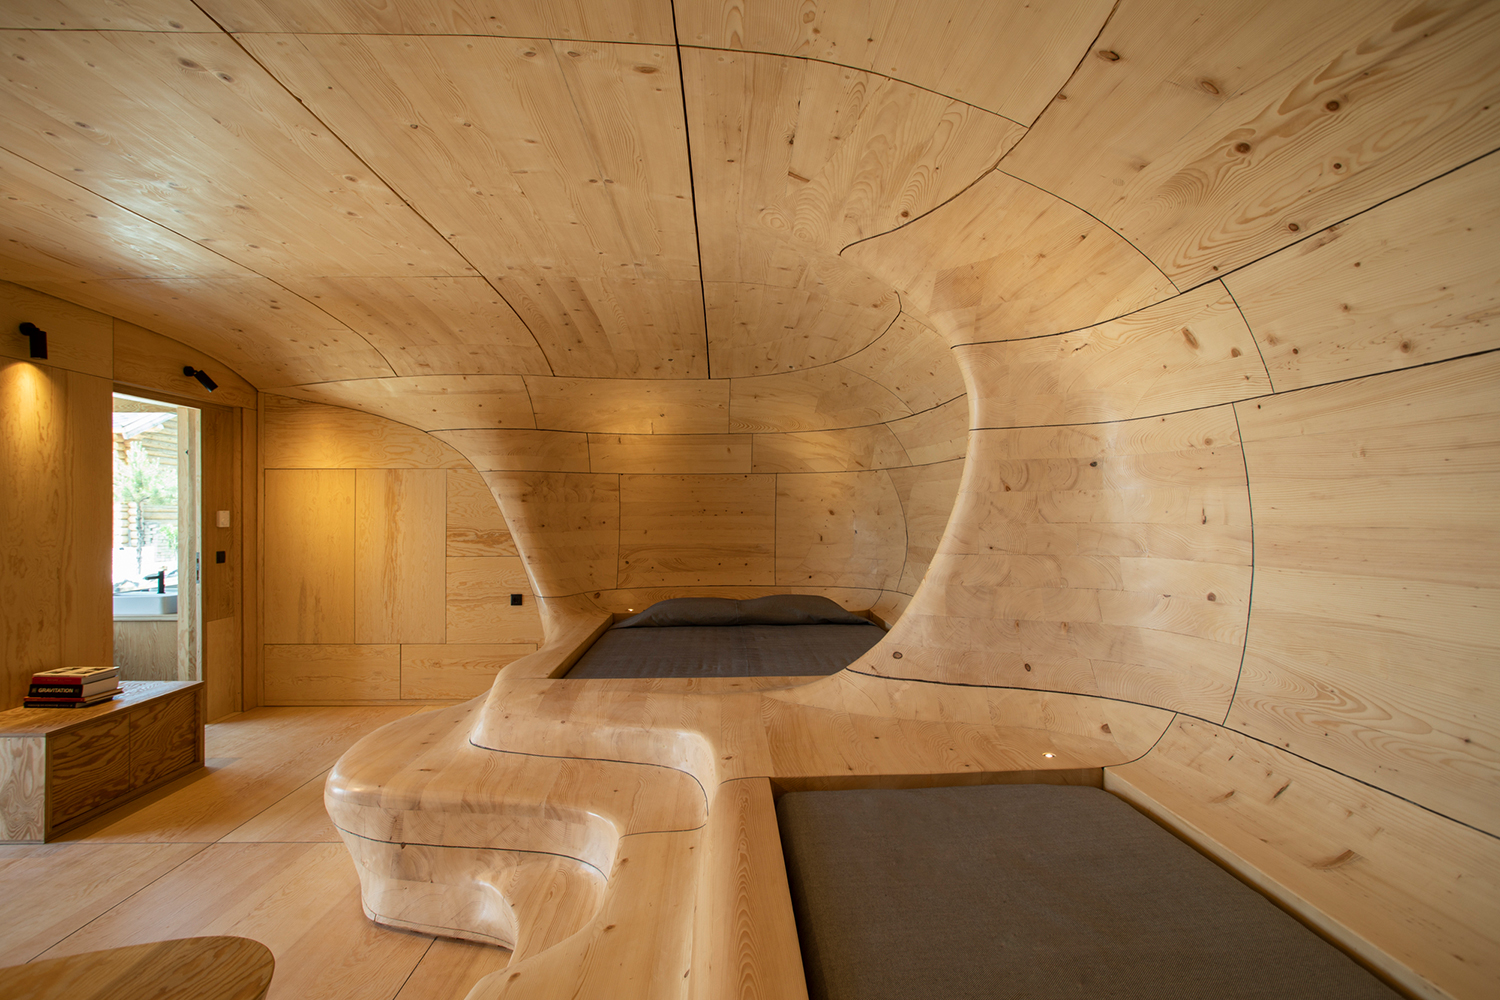 Wooden Cave, the Natural Greek Hotel Suite Luxury Travel Luxury Travel: The Best Views From Hotel Suites wooden cave trikala korinthias greece tenon architecture 2 Luxury Travel Luxury Travel: The Best Views From Hotel Suites wooden cave trikala korinthias greece tenon architecture 2